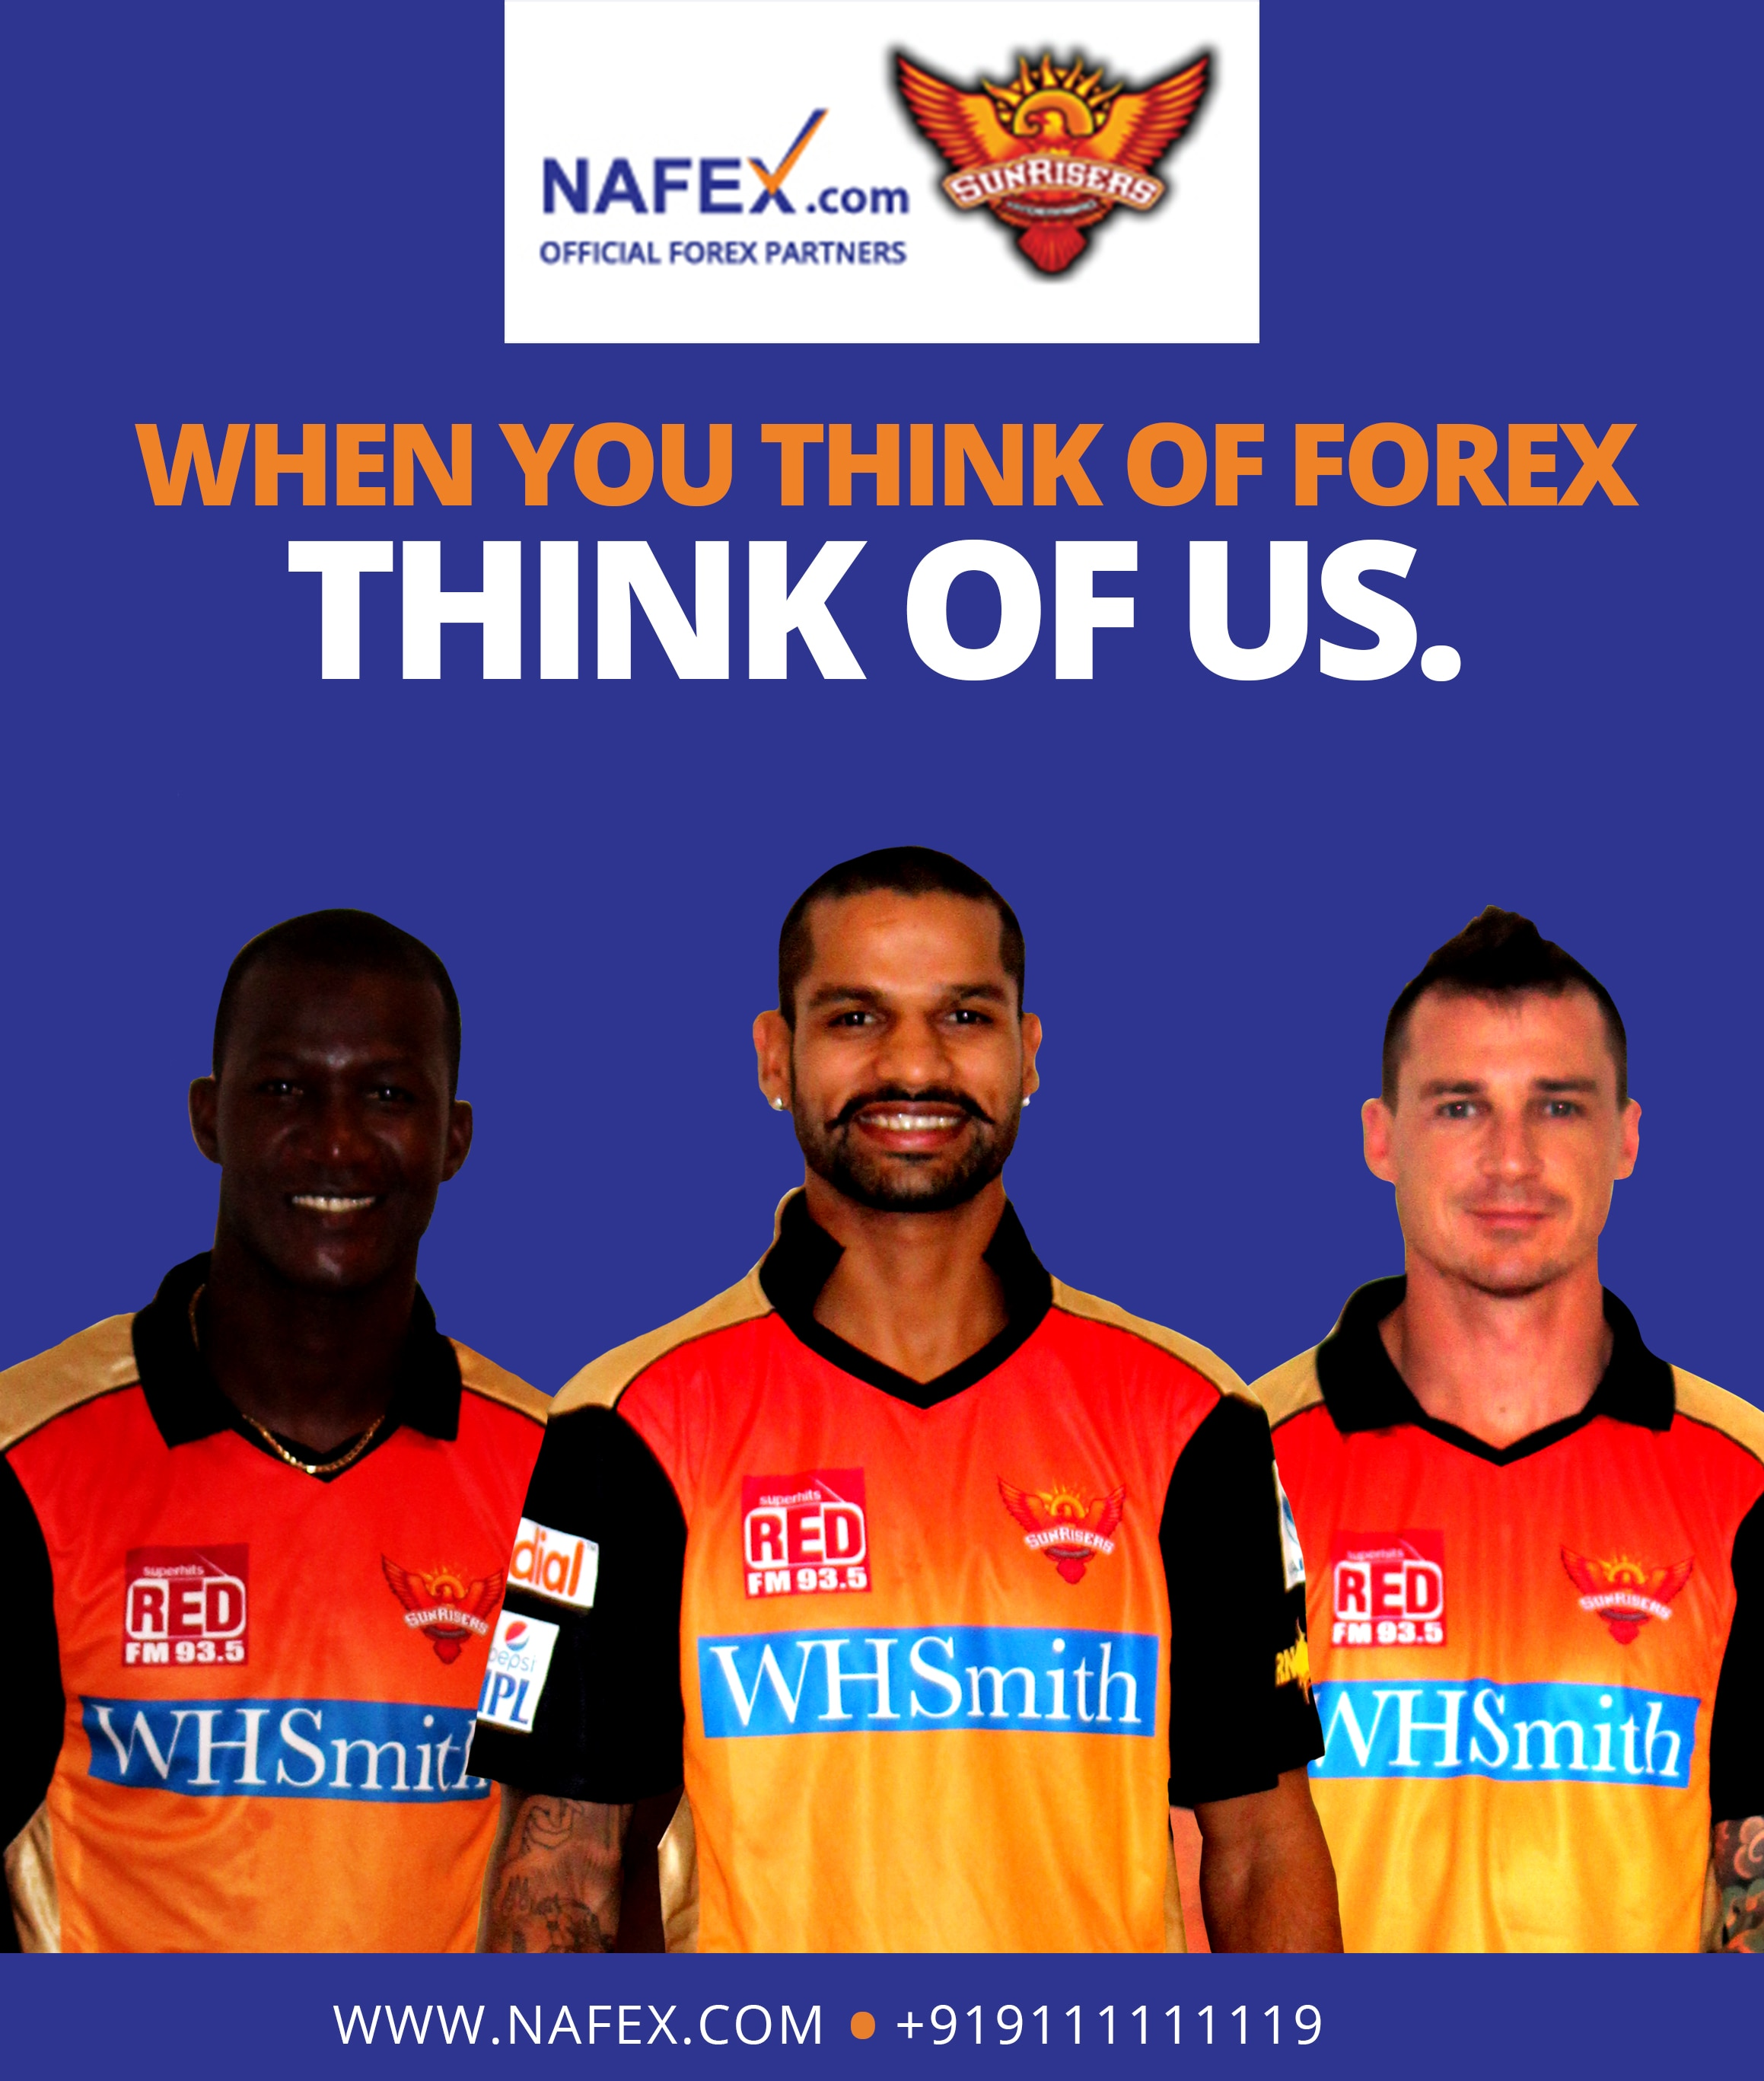 Nafex - Film Nagar, Jubilee Hills  Foreign Currency Exchange Dealers Agents Film Nagar, Jubilee Hills, Online Travellers Cheque & Forex Prepaid Card